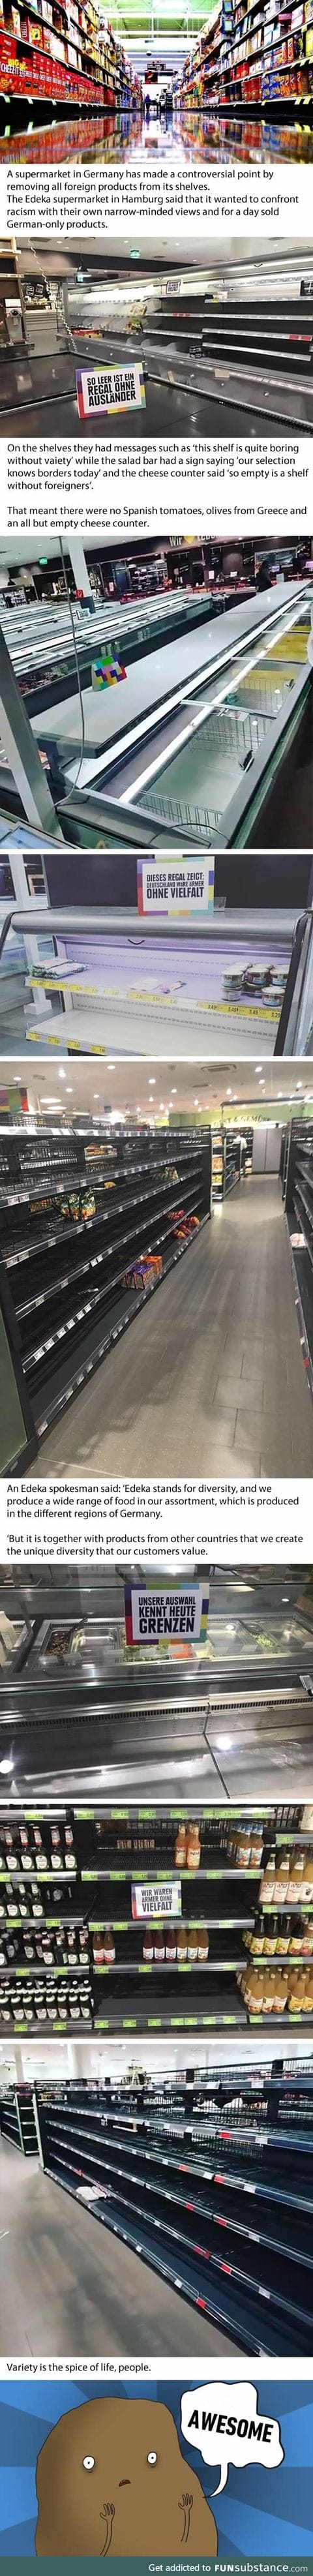 Supermarket removes all foreign products